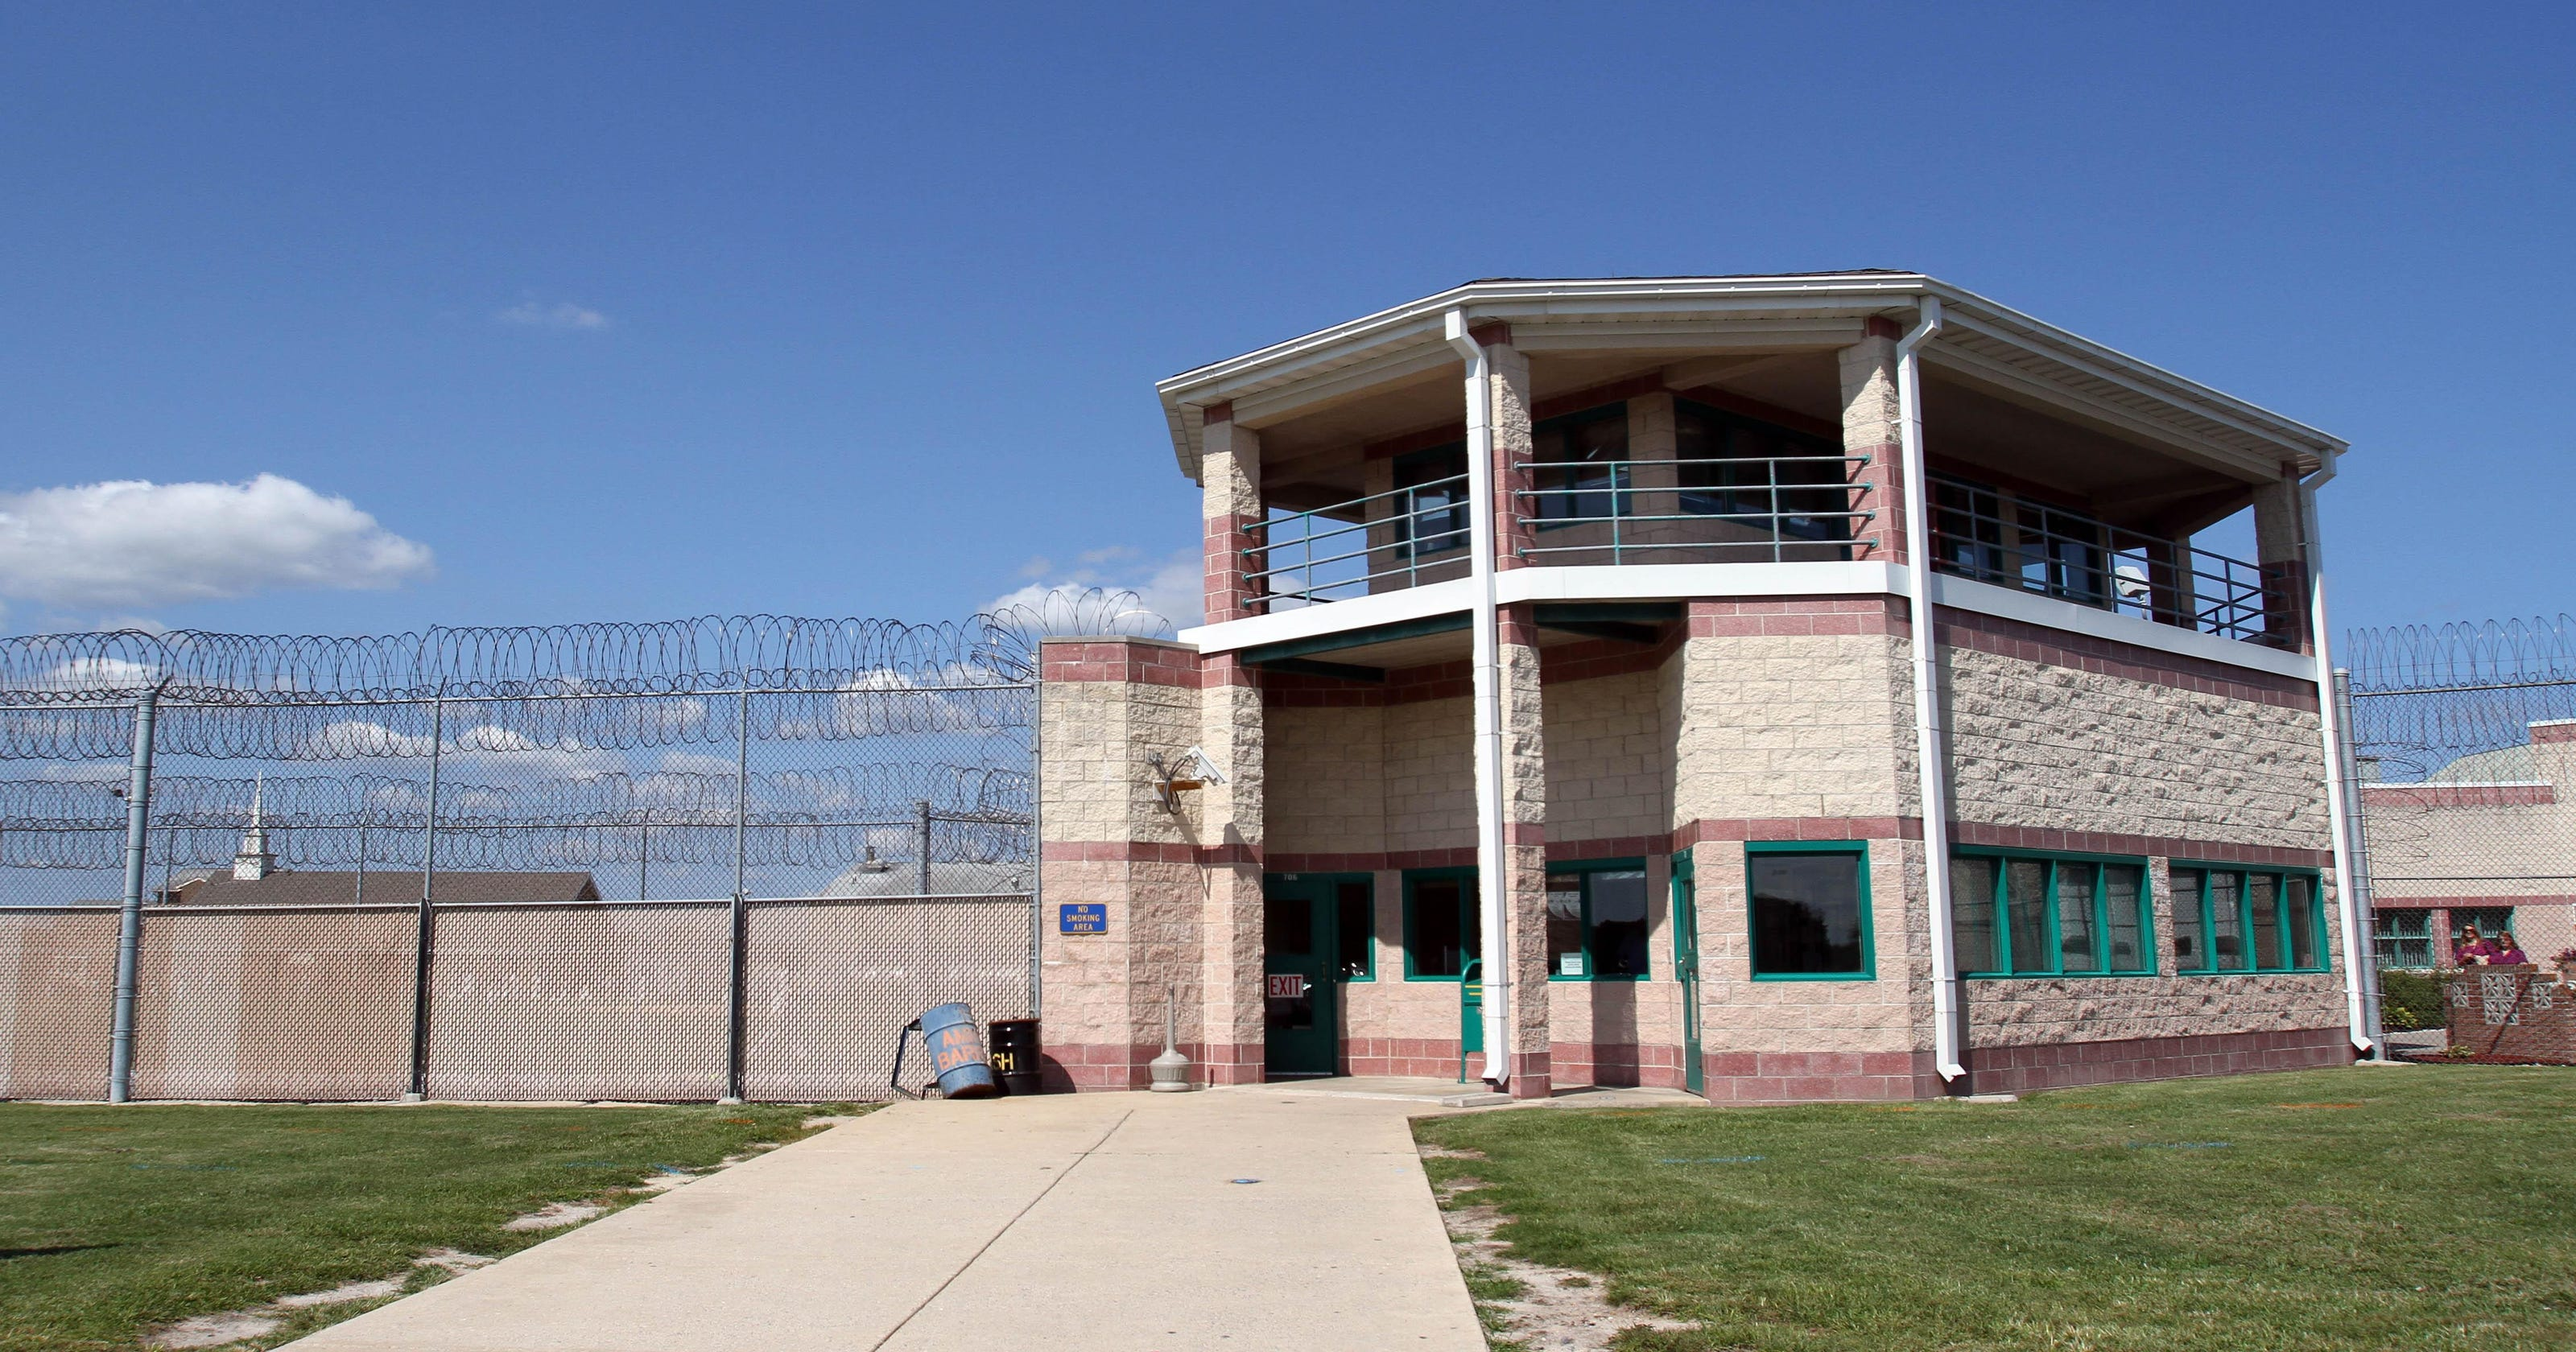 Inmates allege sexual abuse by prison doctor